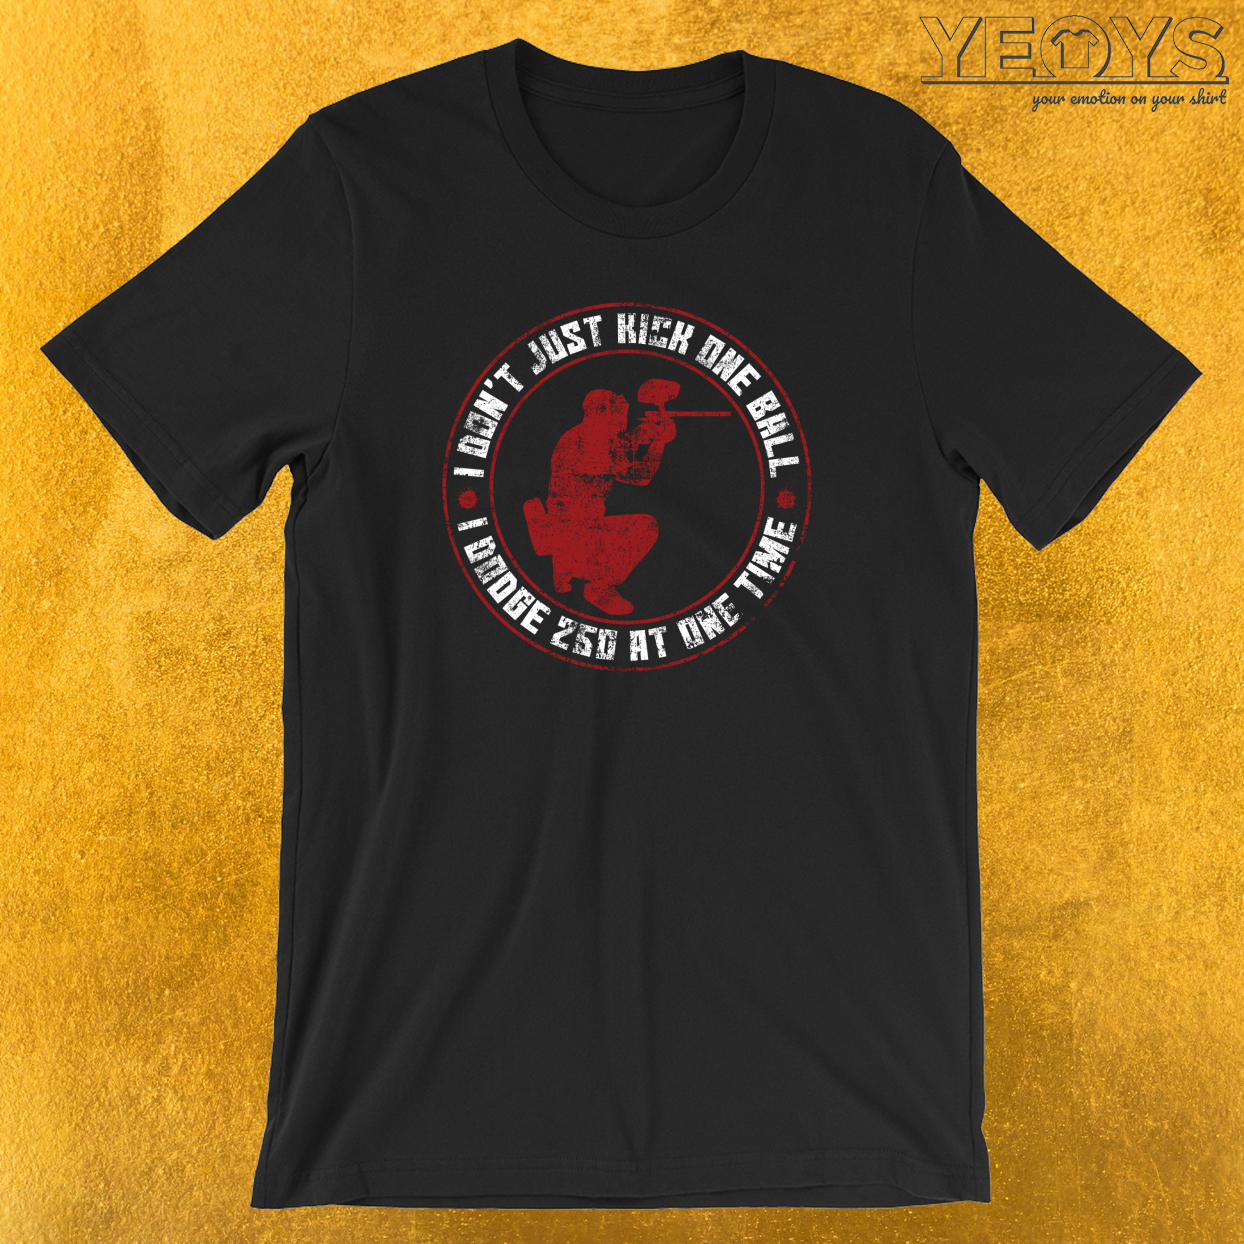 I Don't Just Kick One Ball I Doge 250 At One Time T-Shirt